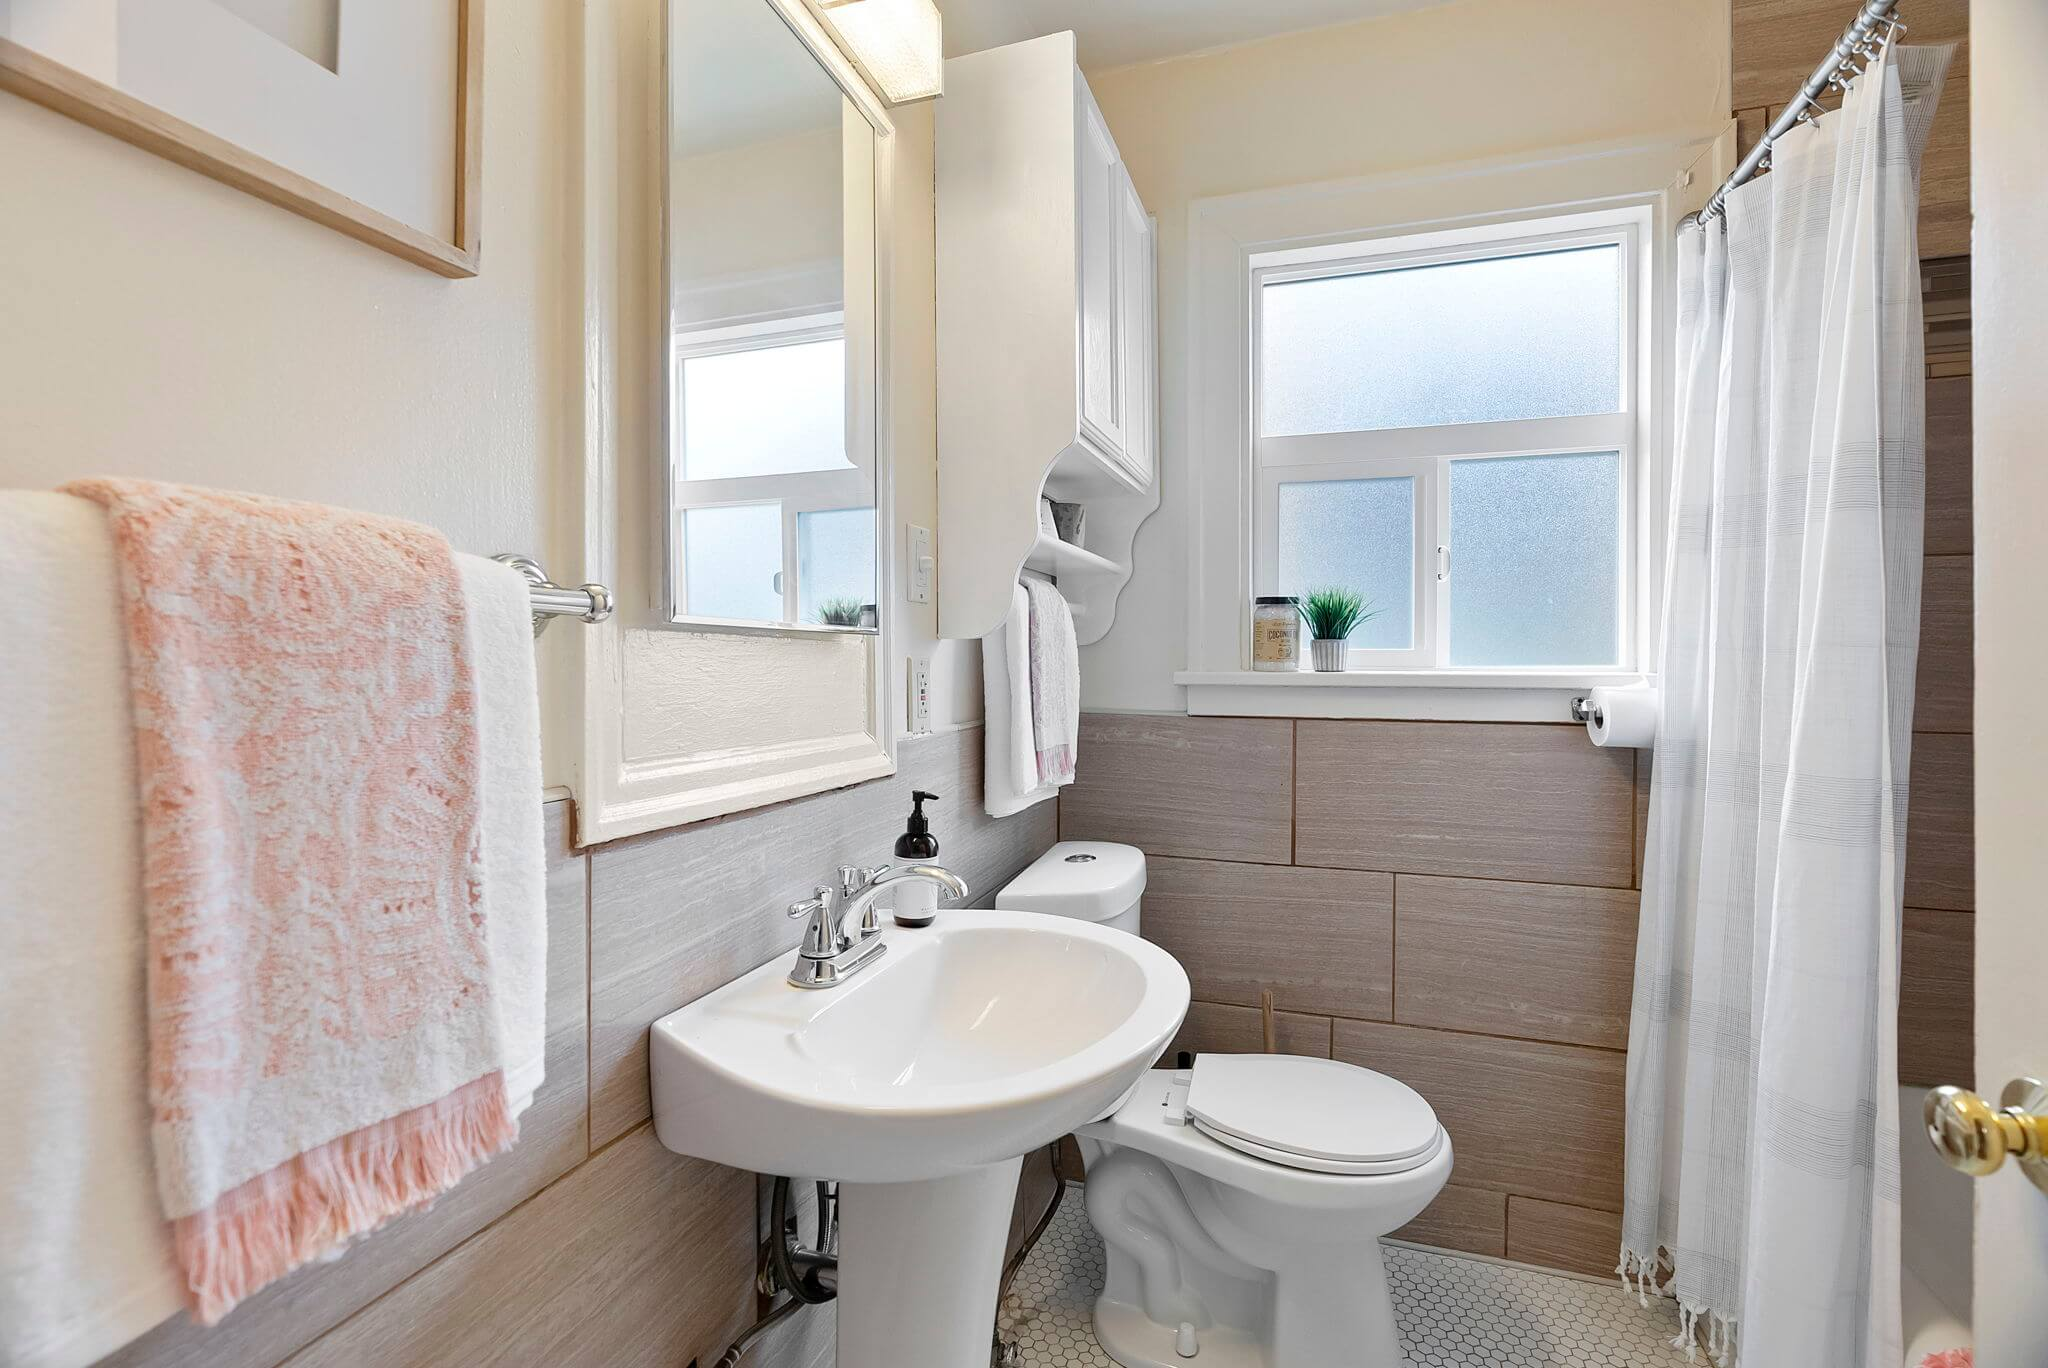 Full bathroom with tub/shower and pedestal sink